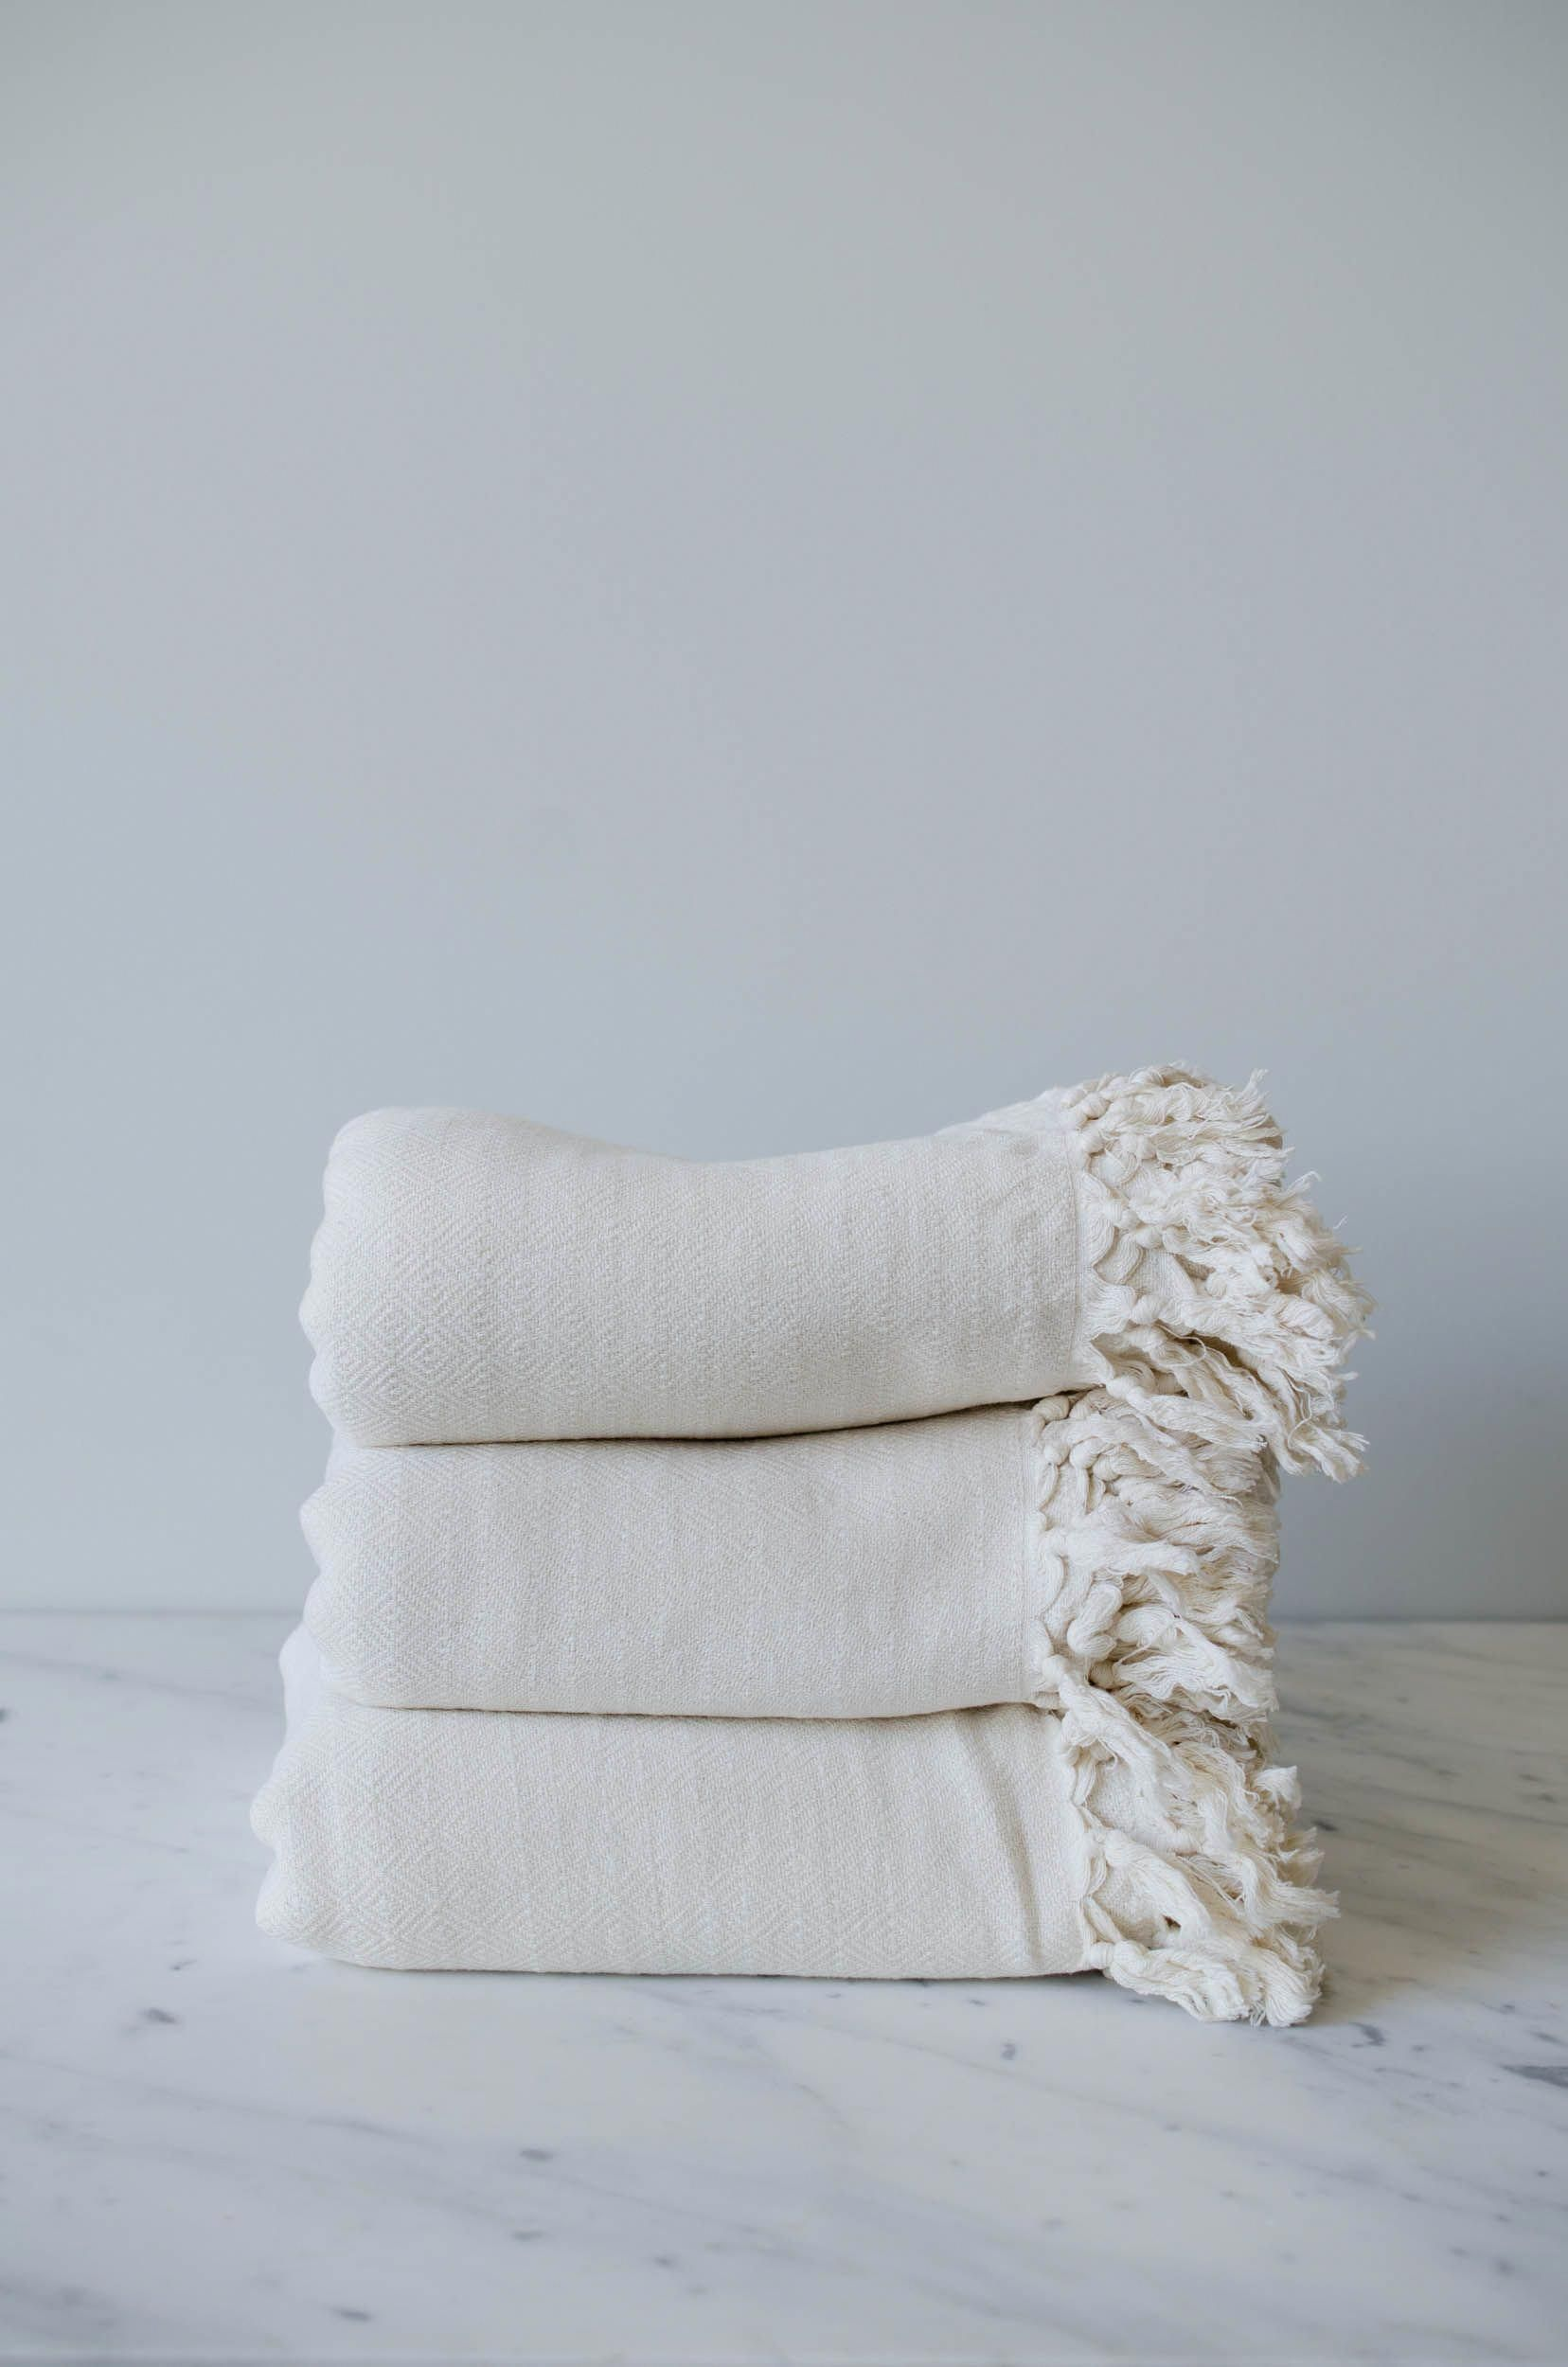 Hand Loomed In Turkey This Soft And Lightweight Cotton